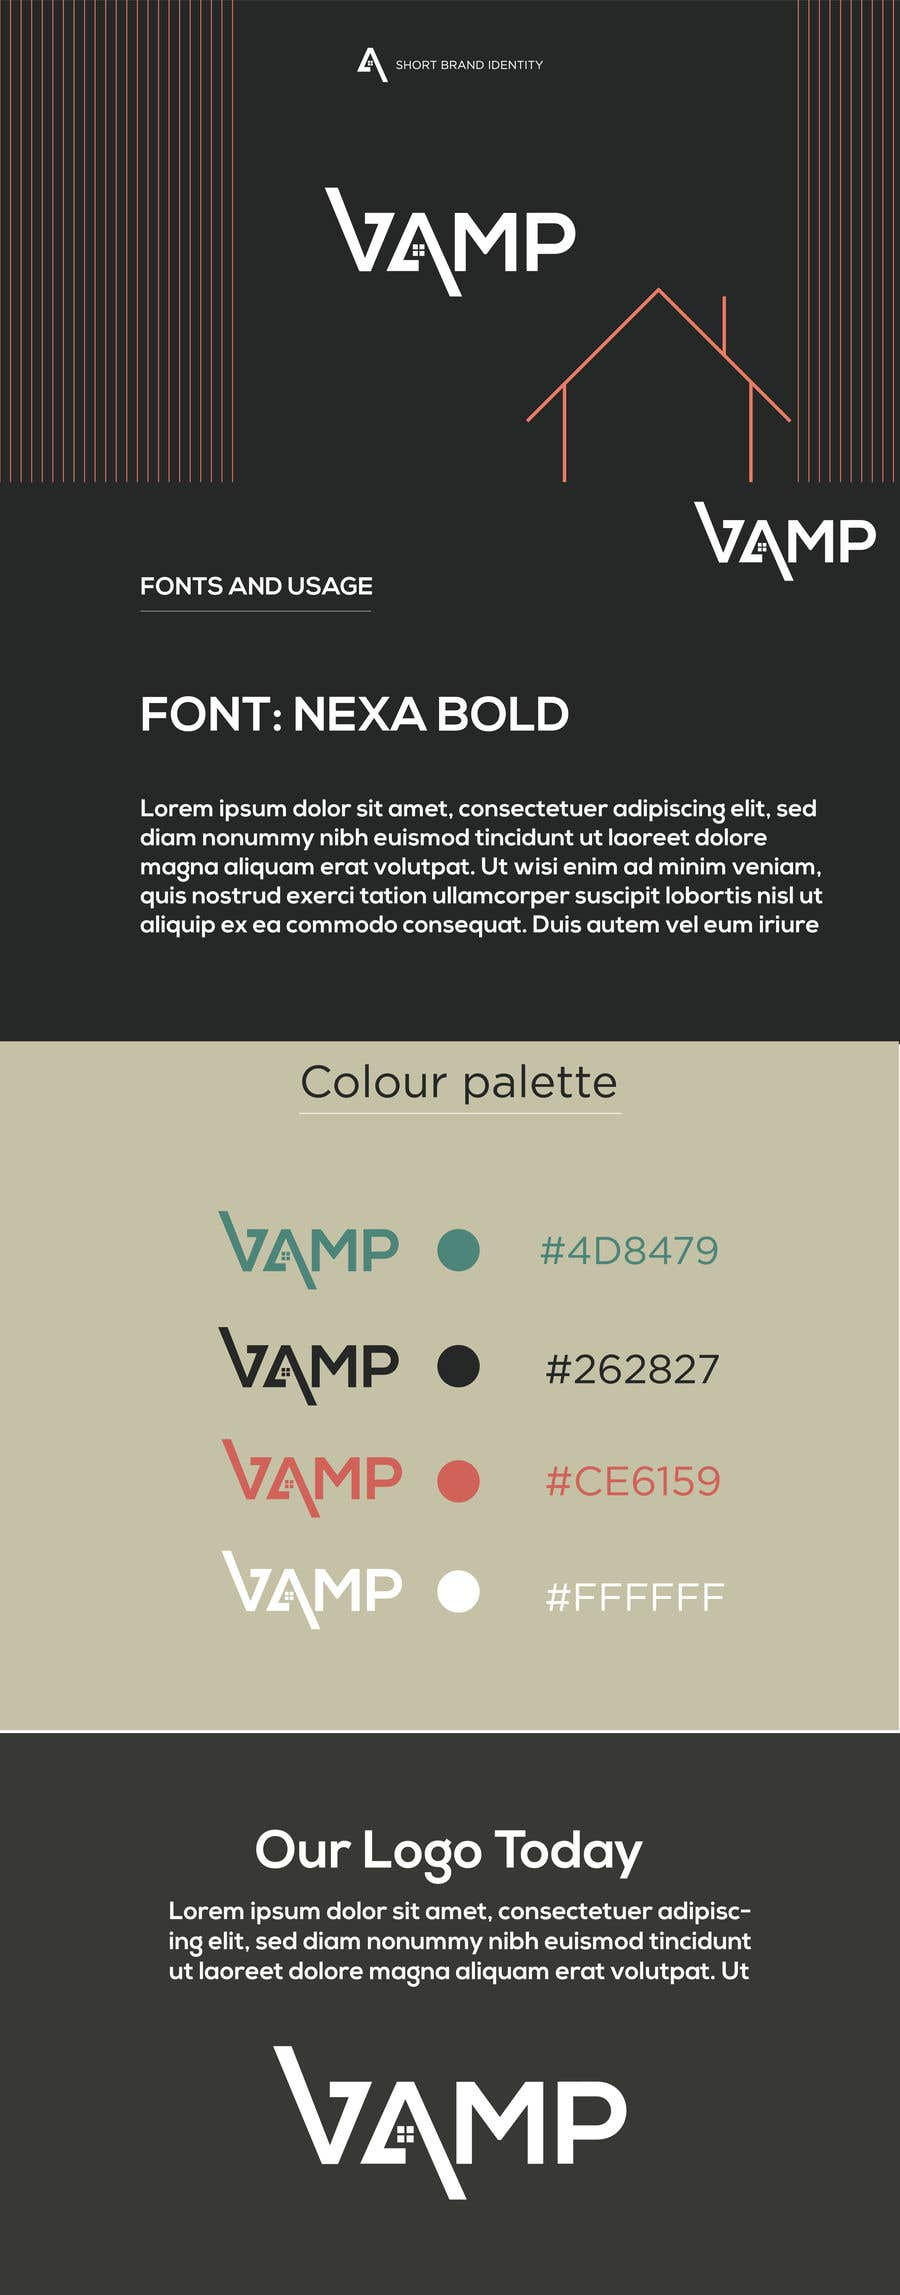 Contest Entry #                                        738                                      for                                         Brand Identity Guideline Sections (just creative Elements)